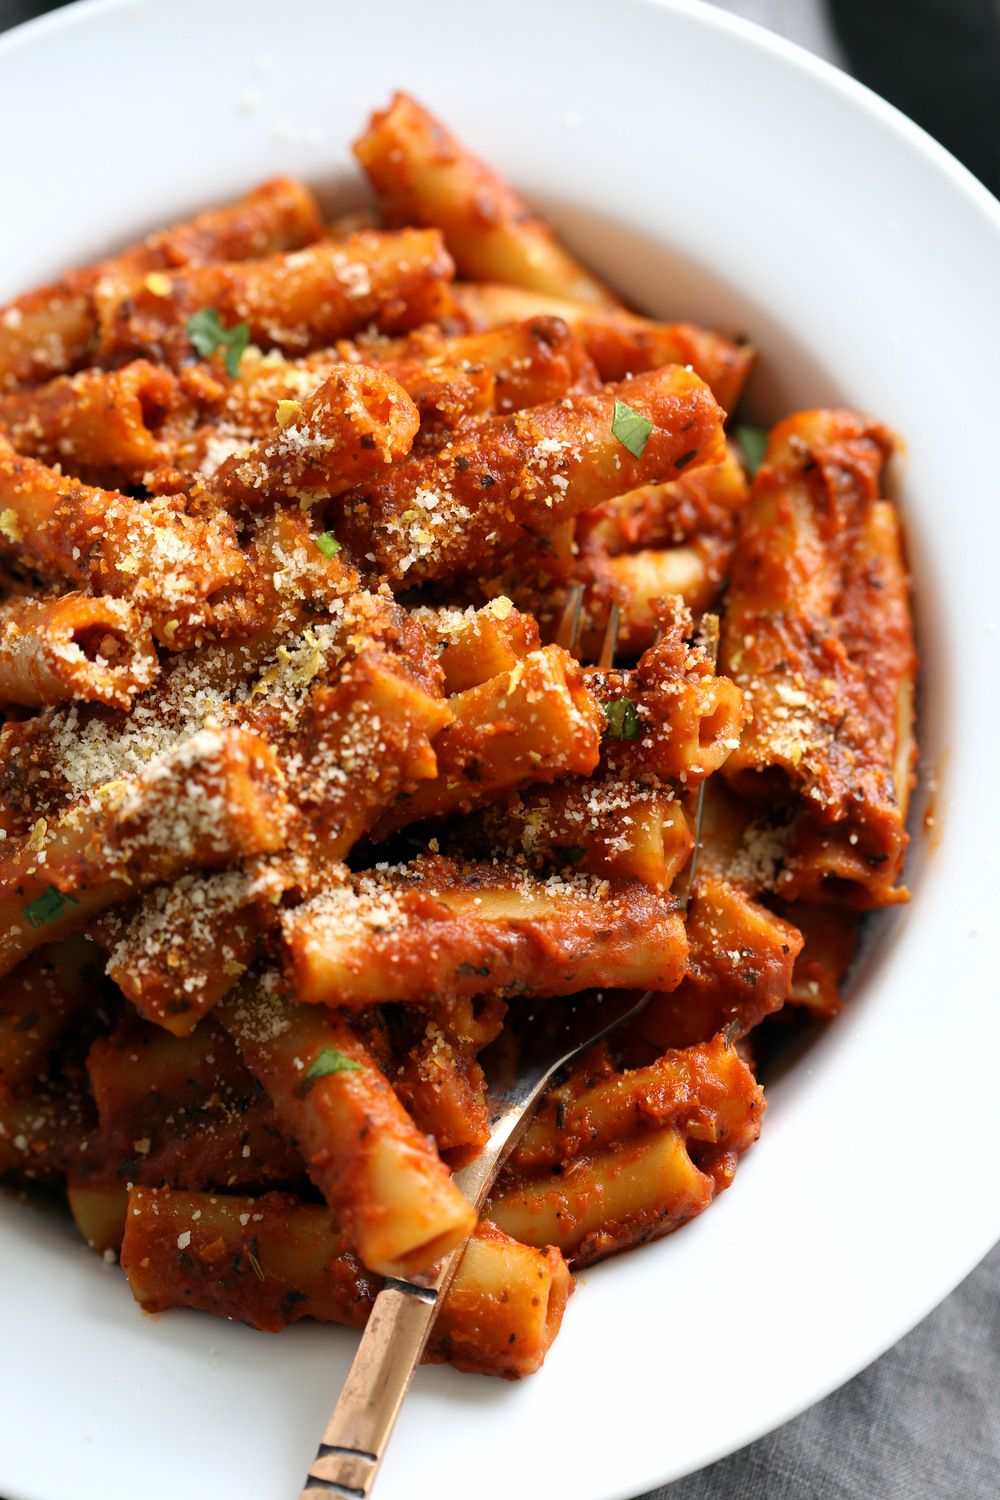 Instant Pot Ziti With Tomato Sauce Date Night Quick Pasta With Ziti Sprinkled With Vegan Par In 2020 Quick Pasta Recipes Vegan Instant Pot Recipes Vegan Recipes Easy